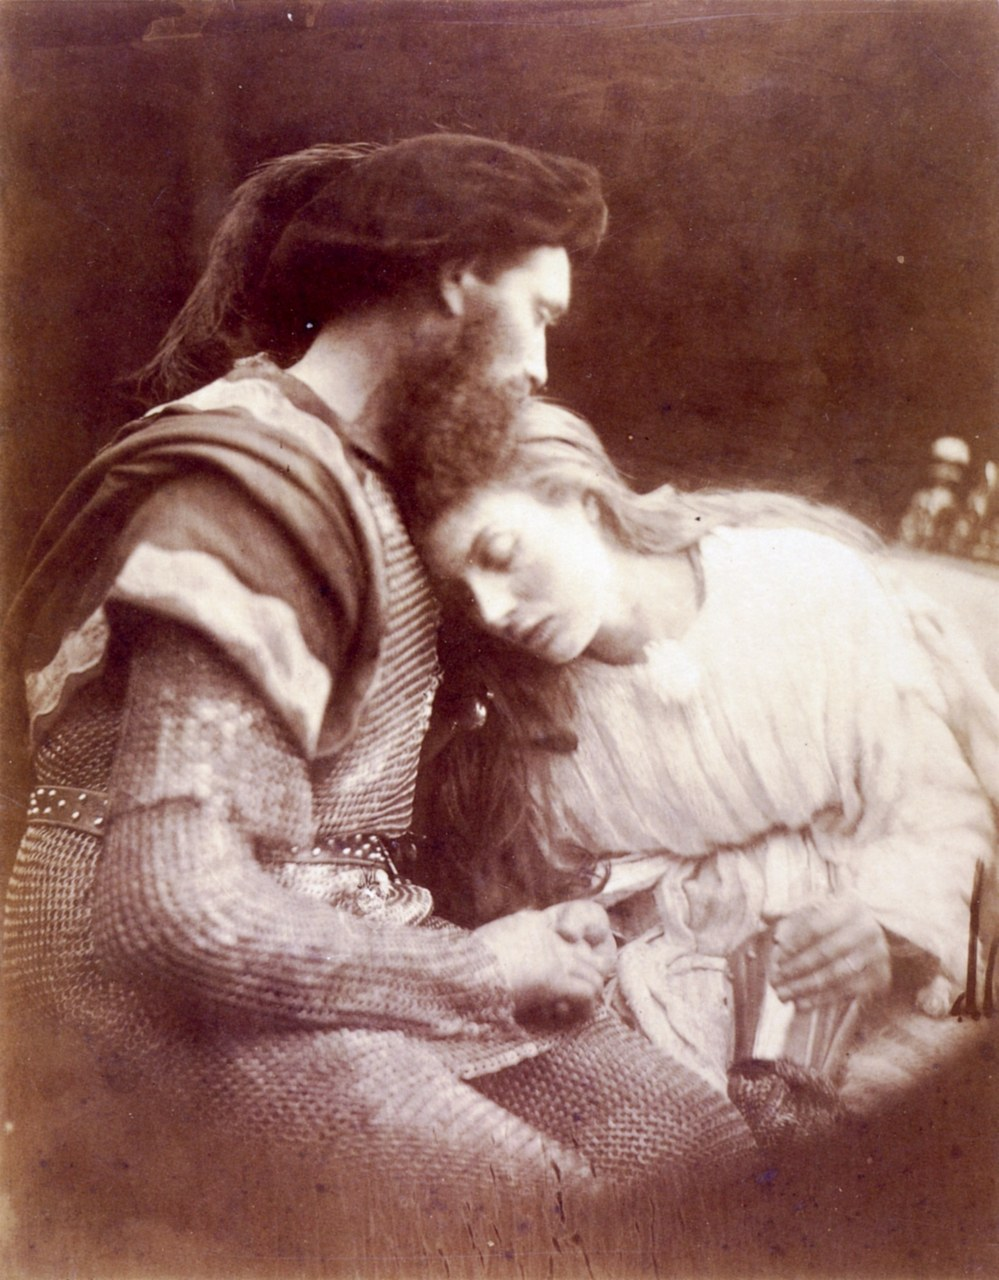 fig. 6 Julia Margaret Cameron,The Parting of Sir Lancelot and Queen Guinevere, illustrazione per Alfred Tennyson,Idyllis of the King and Other Poems. I modelli sono Andrew Hichens e Mary Prinsep, Paris, Musée d'Orsay